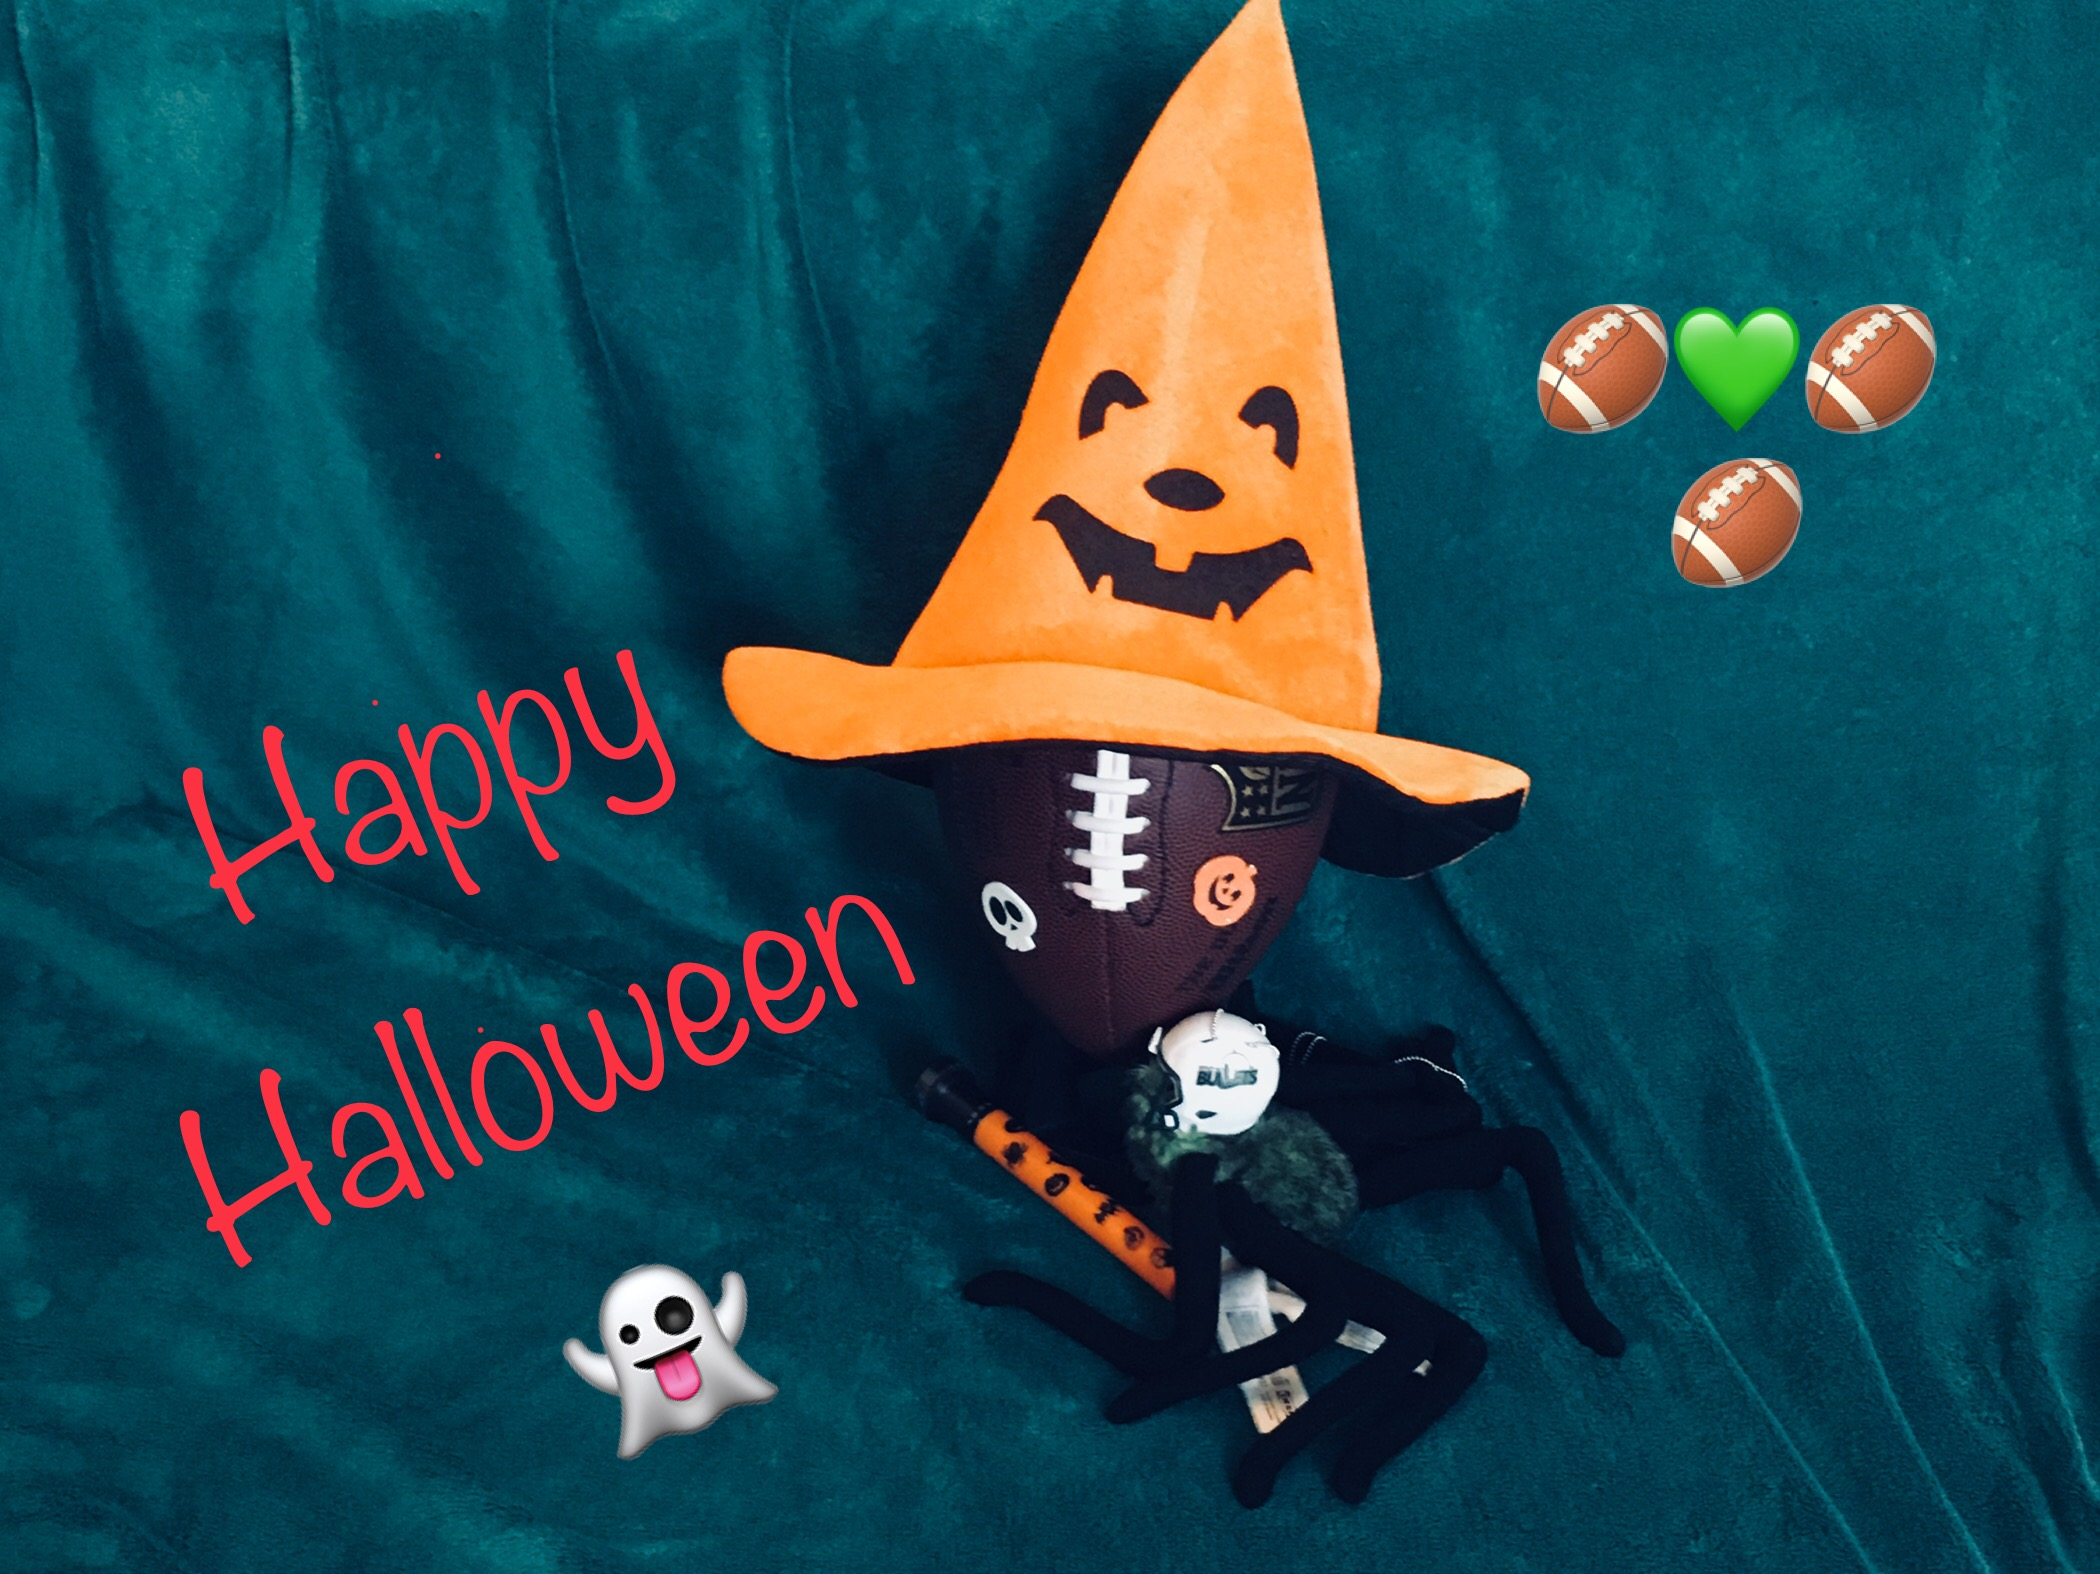 Happy halloween 2017 Spider mit Helm und Football mit Hut